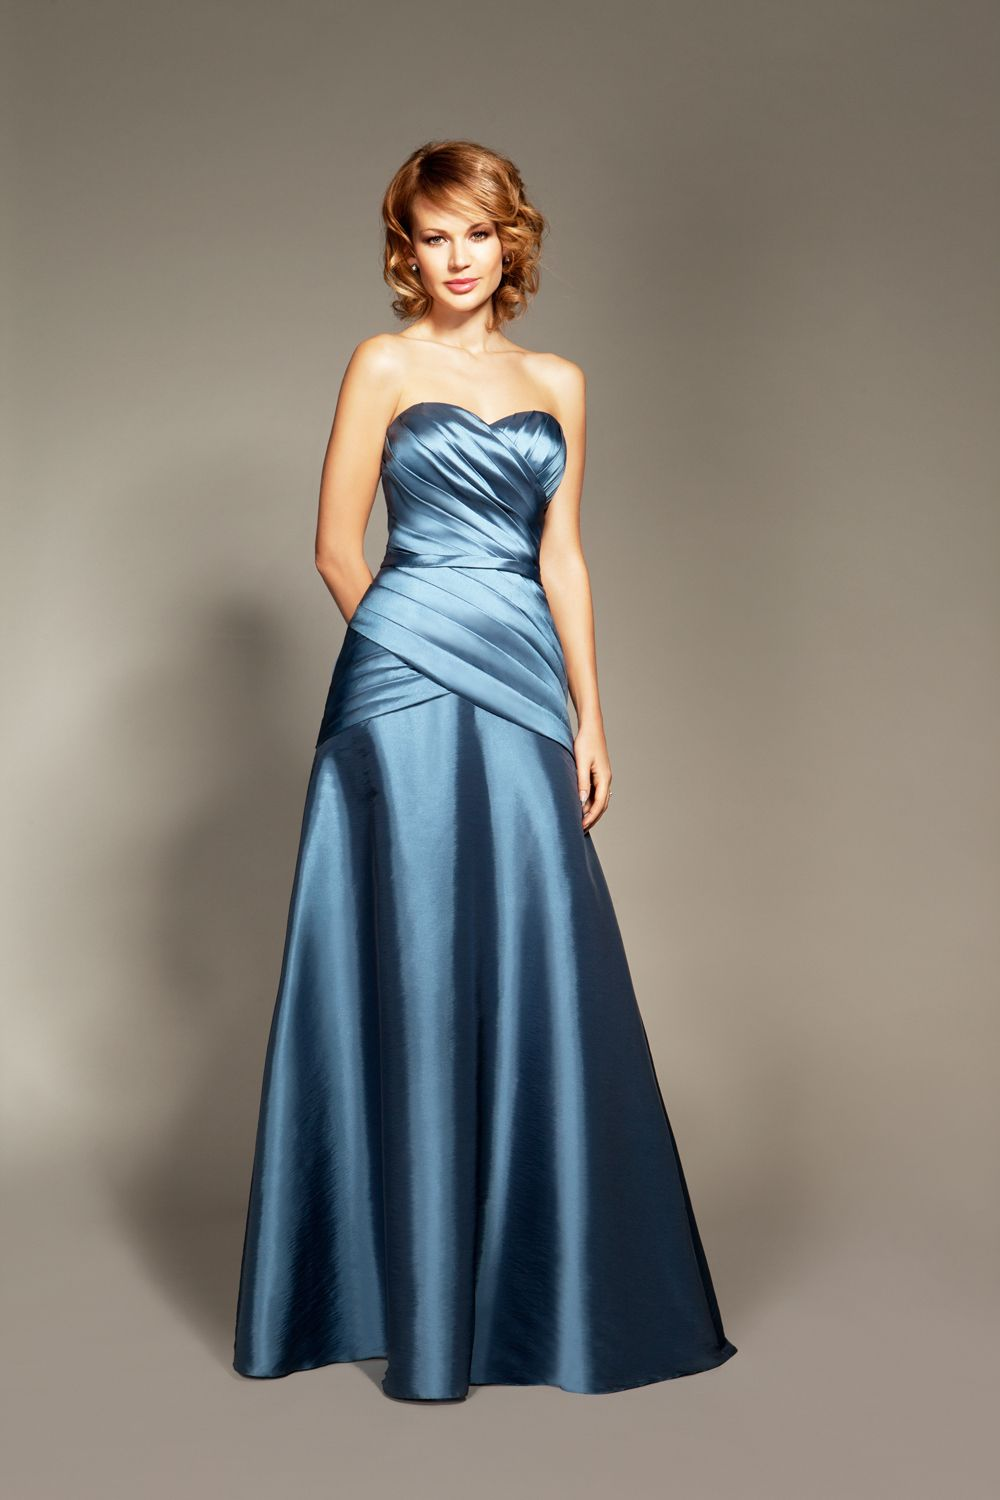 Winter Bridesmaid Dresses: 15 Enchanting Styles | Winter bridesmaid ...